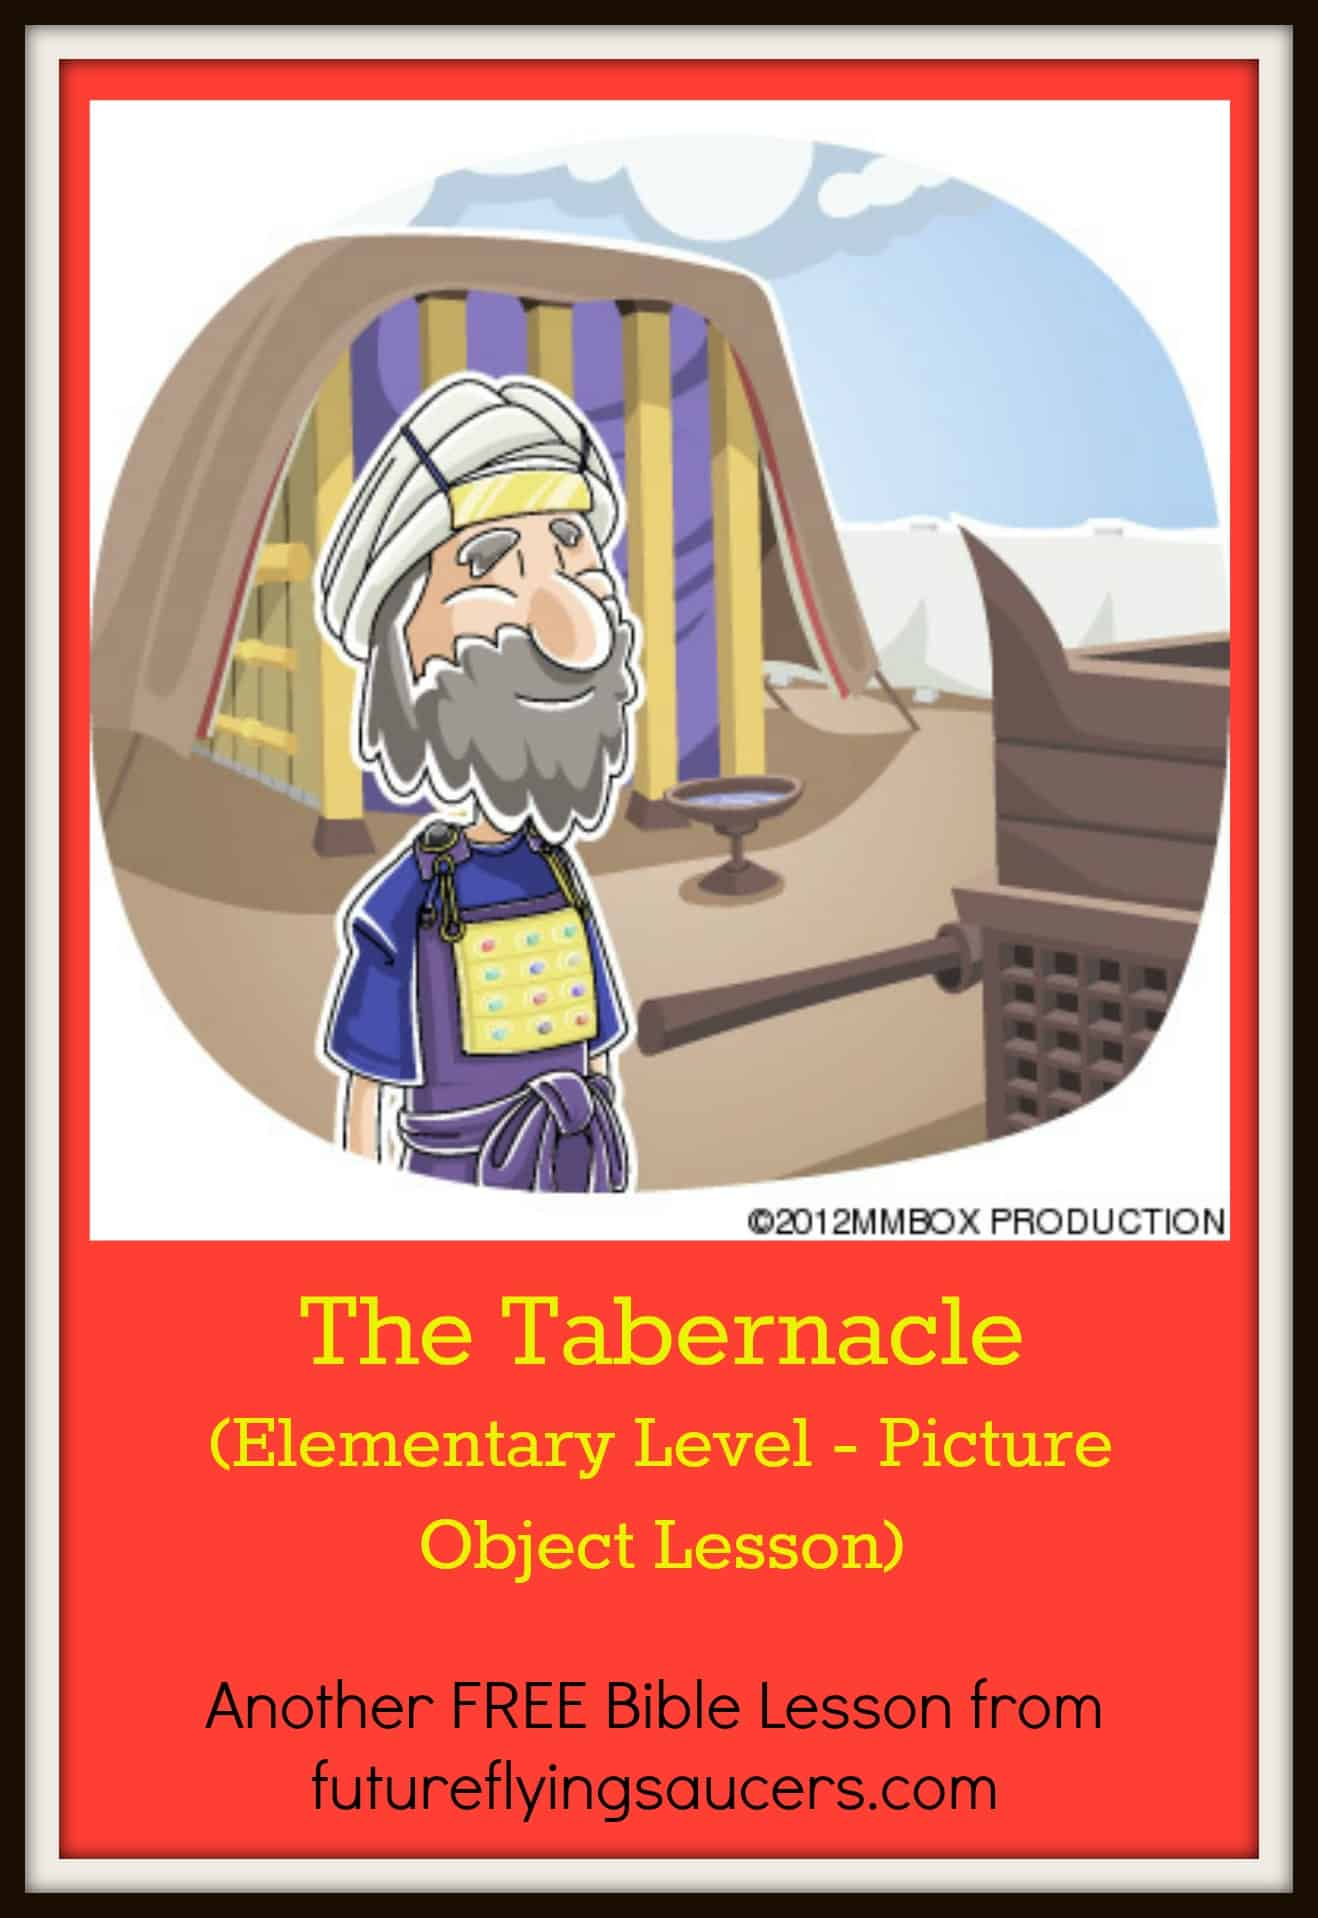 The Tabernacle Picture Object Lesson